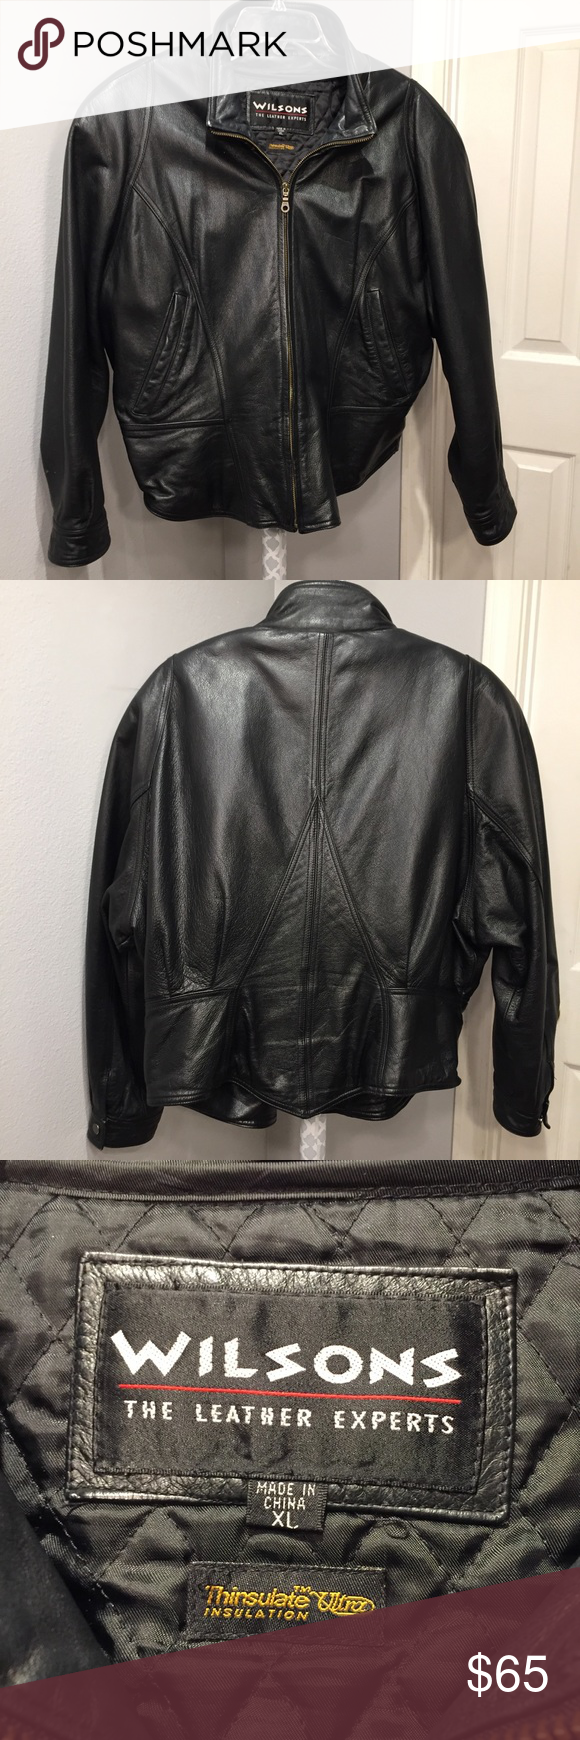 HEIN GERICKE FIRSTGEAR Leather moto jacket coat Awesome